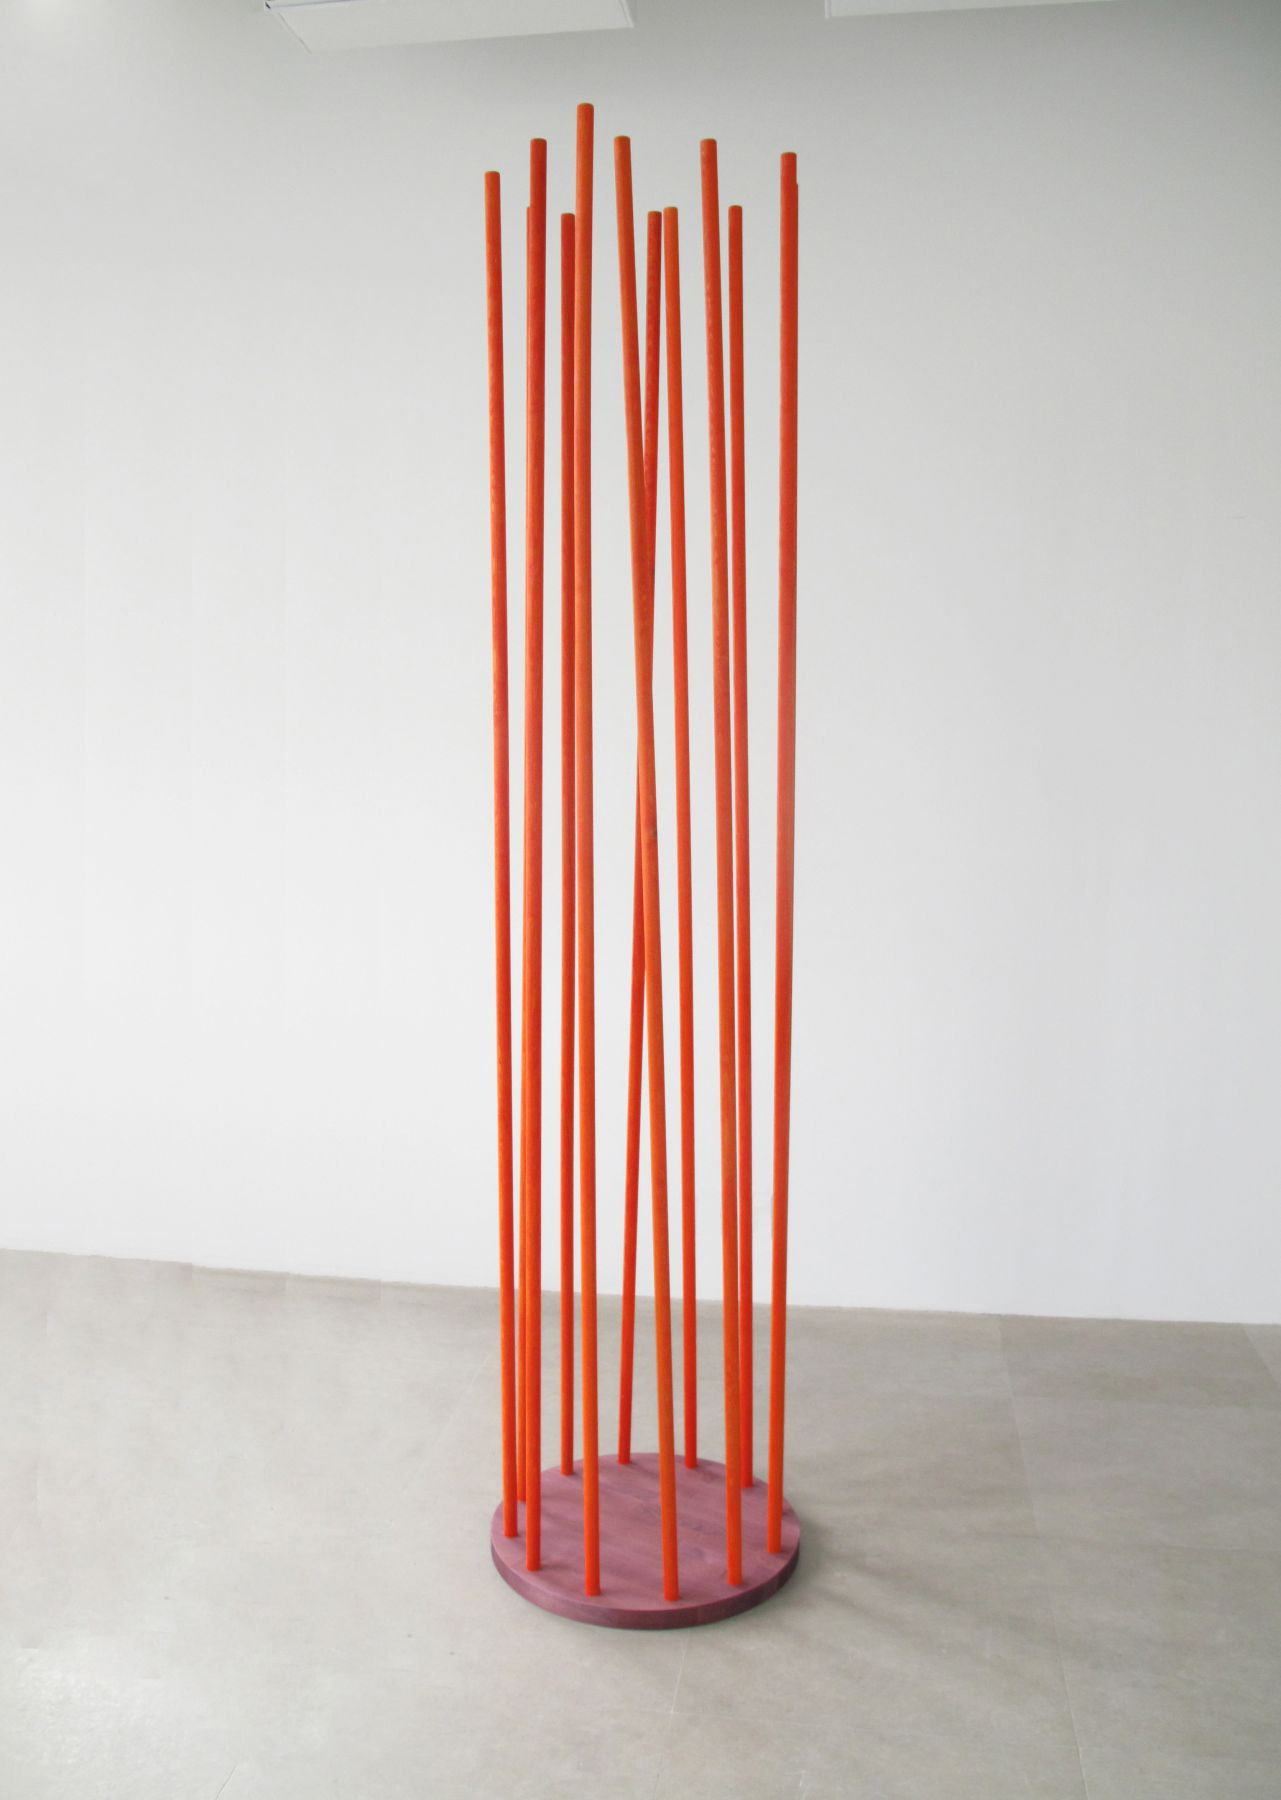 Trans Column 6 (violet and orange), 2009, wood, gouache, oil, 94 1/2 x 22 1/2  x 22 1/2 inches